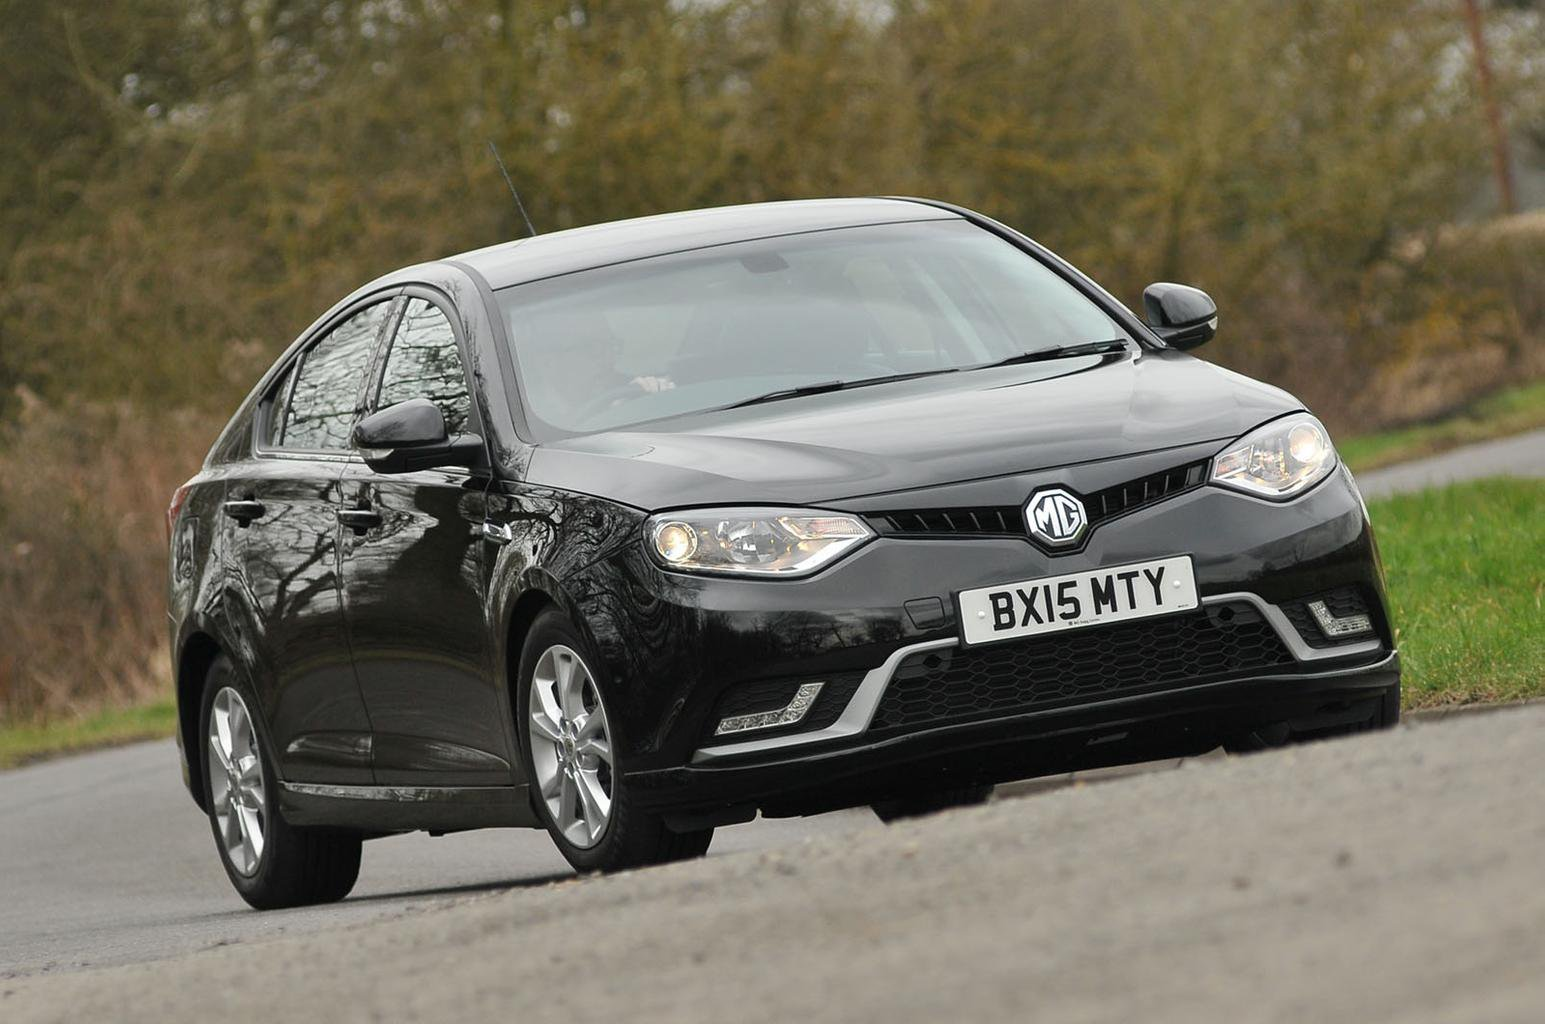 2015 mg 6 - pricing, engine and specifications | what car?